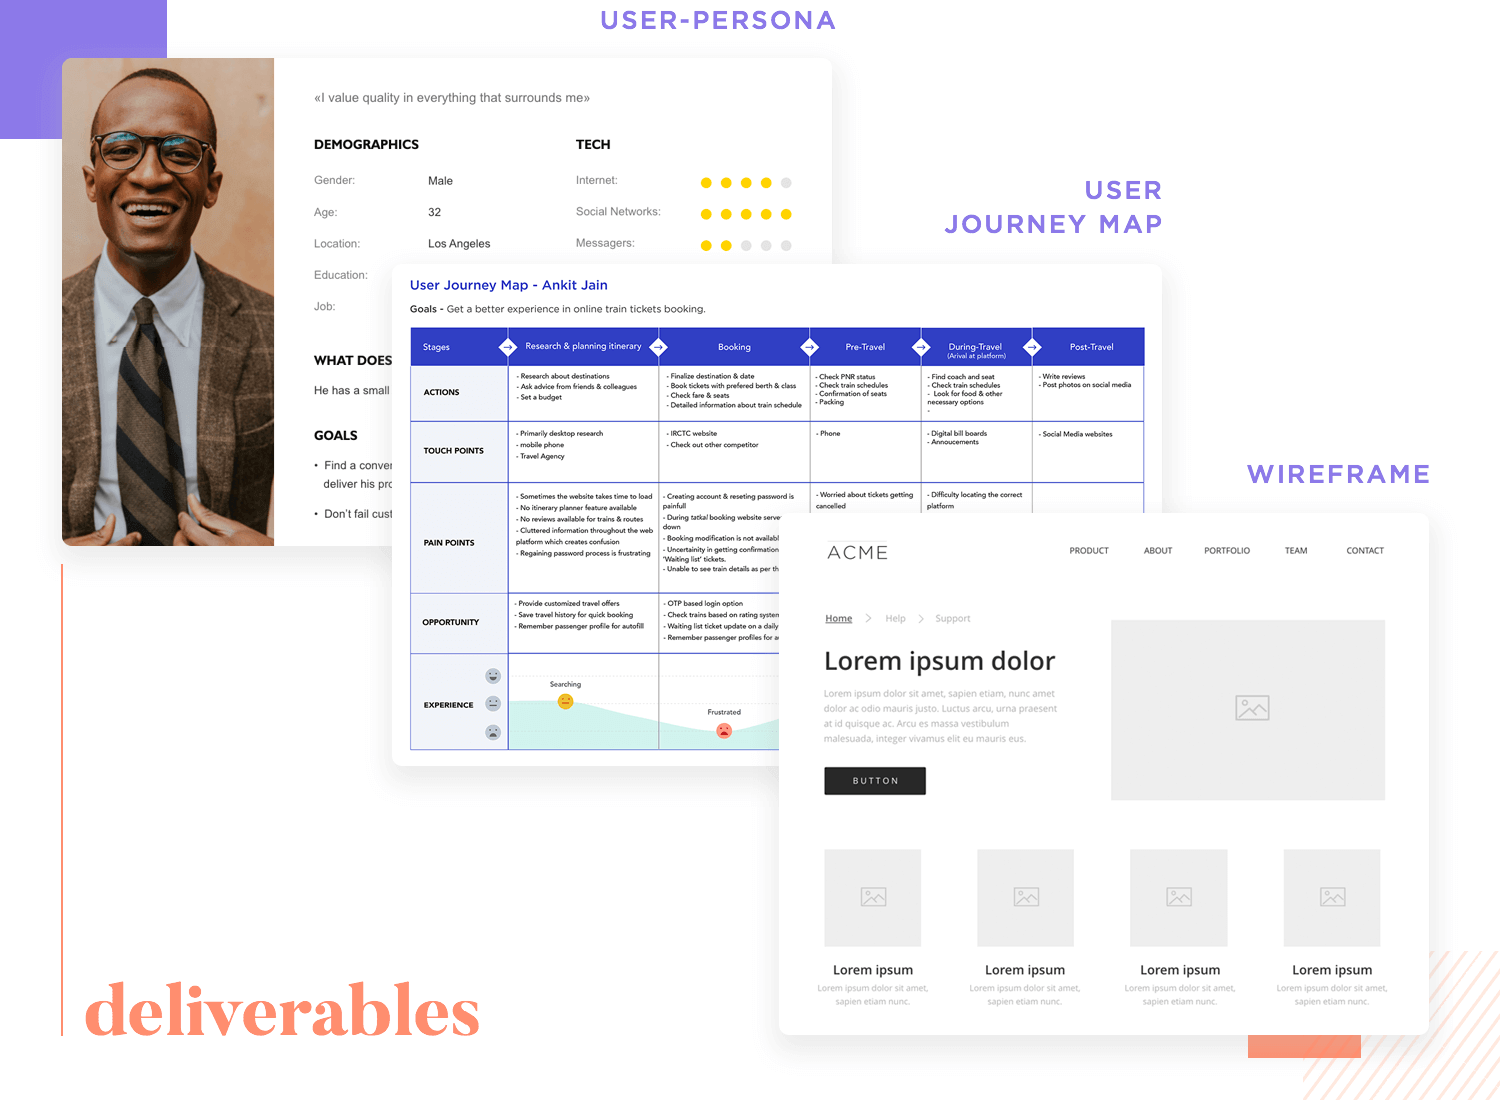 ux design deliverables including wireframes, user personas and journey maps